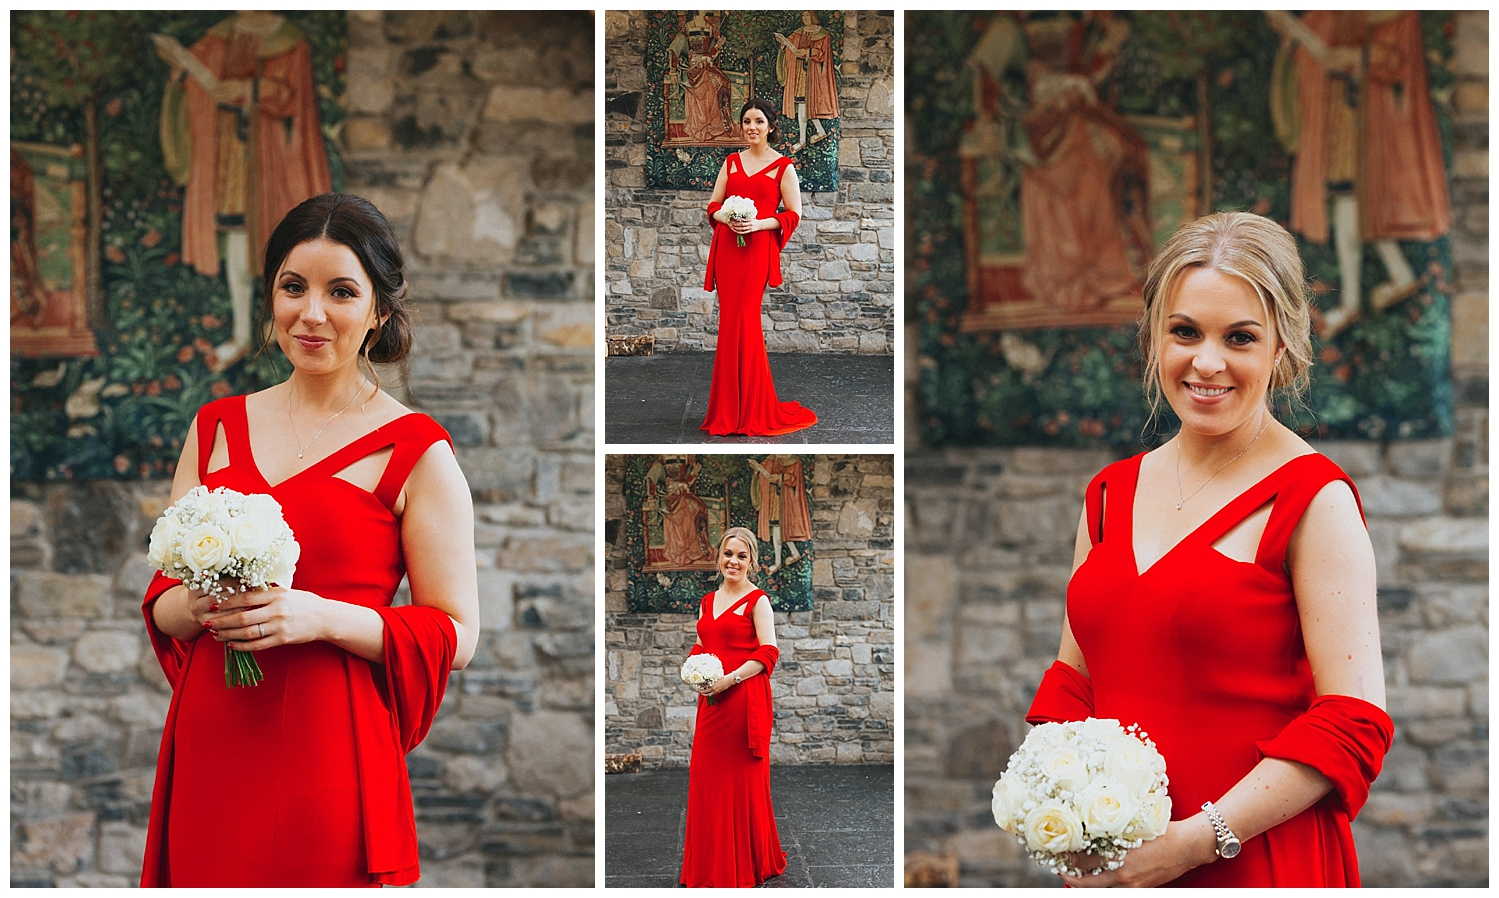 Barberstown_Castle_Wedding_Photographer_Livia_Figueiredo_566.jpg